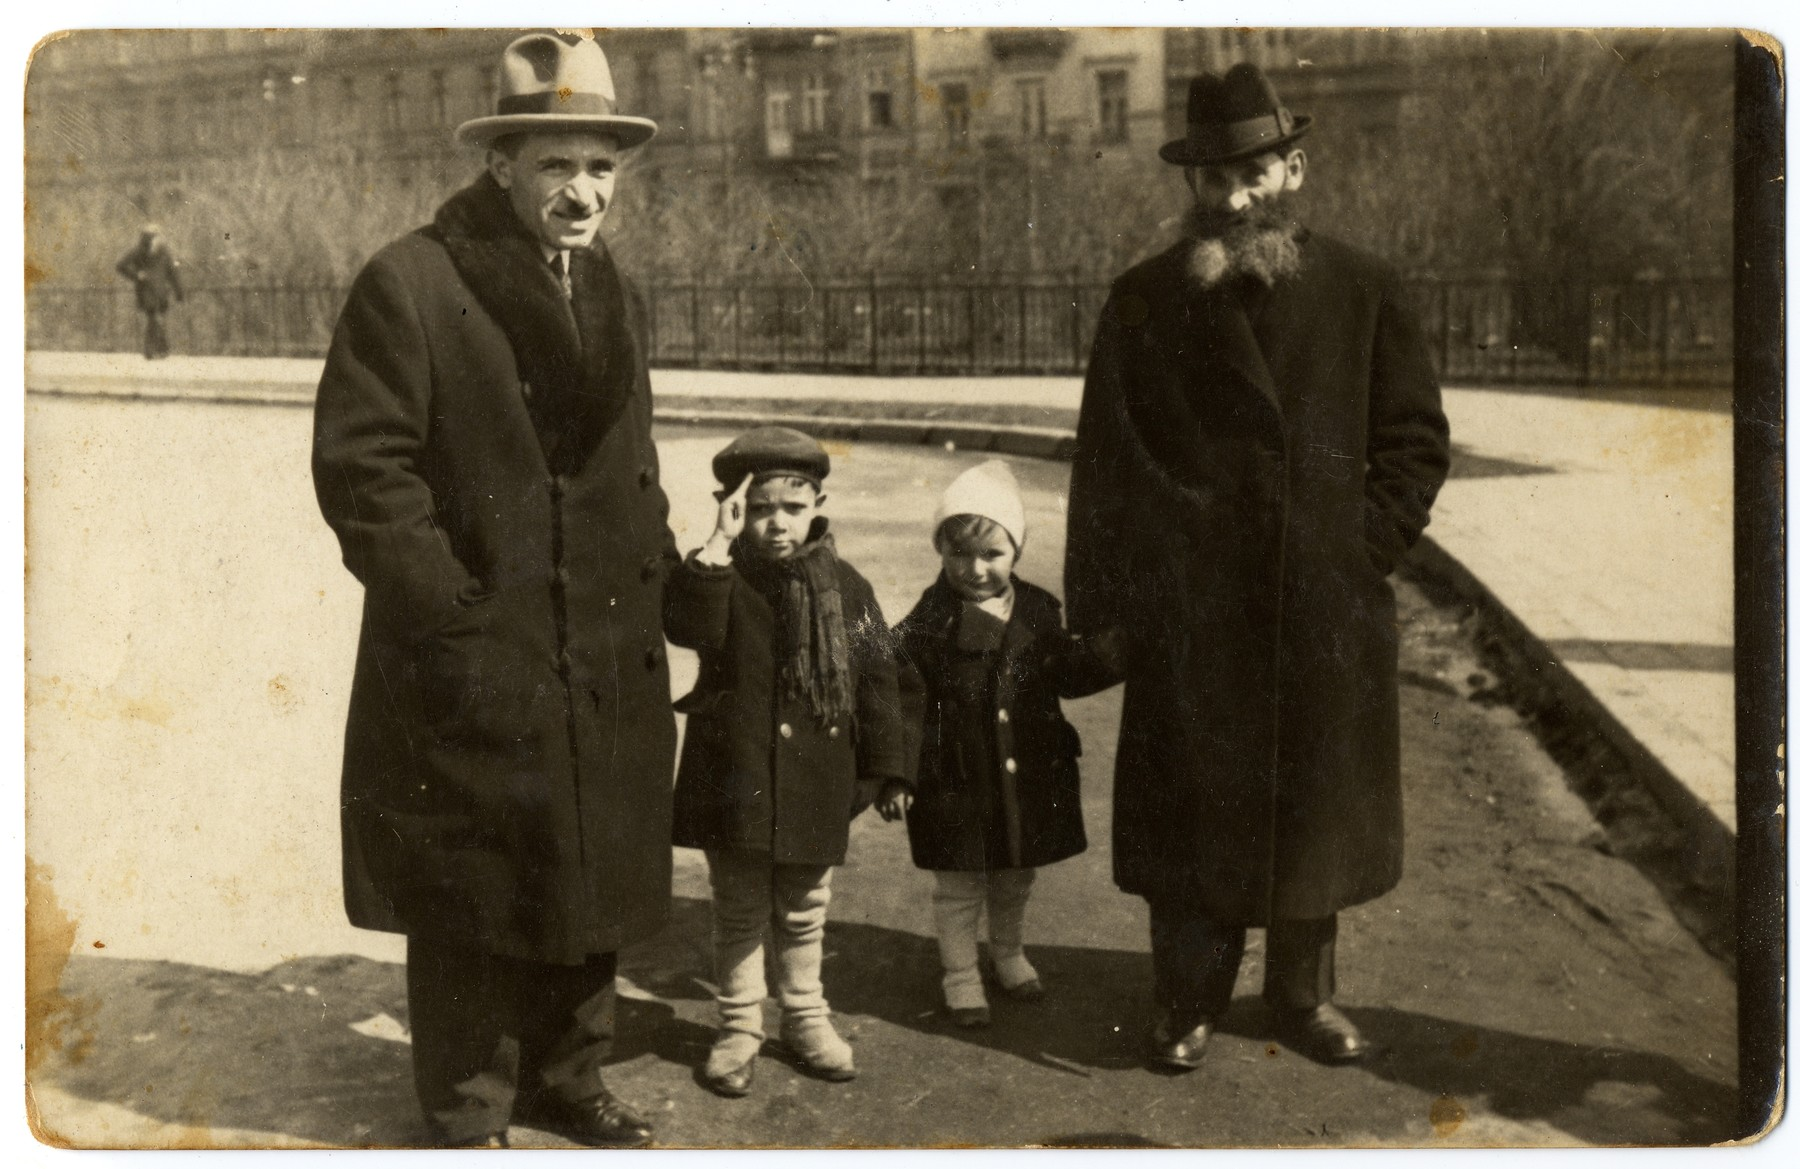 A Polish Jewish family walks on the Planty in Krakow.   Pictured from left to right are: Chaim Horowitz, Josef Horowitz, Romek Zimet (the donor's cousin) and Izaak Horowitz (the donor's grandfather).